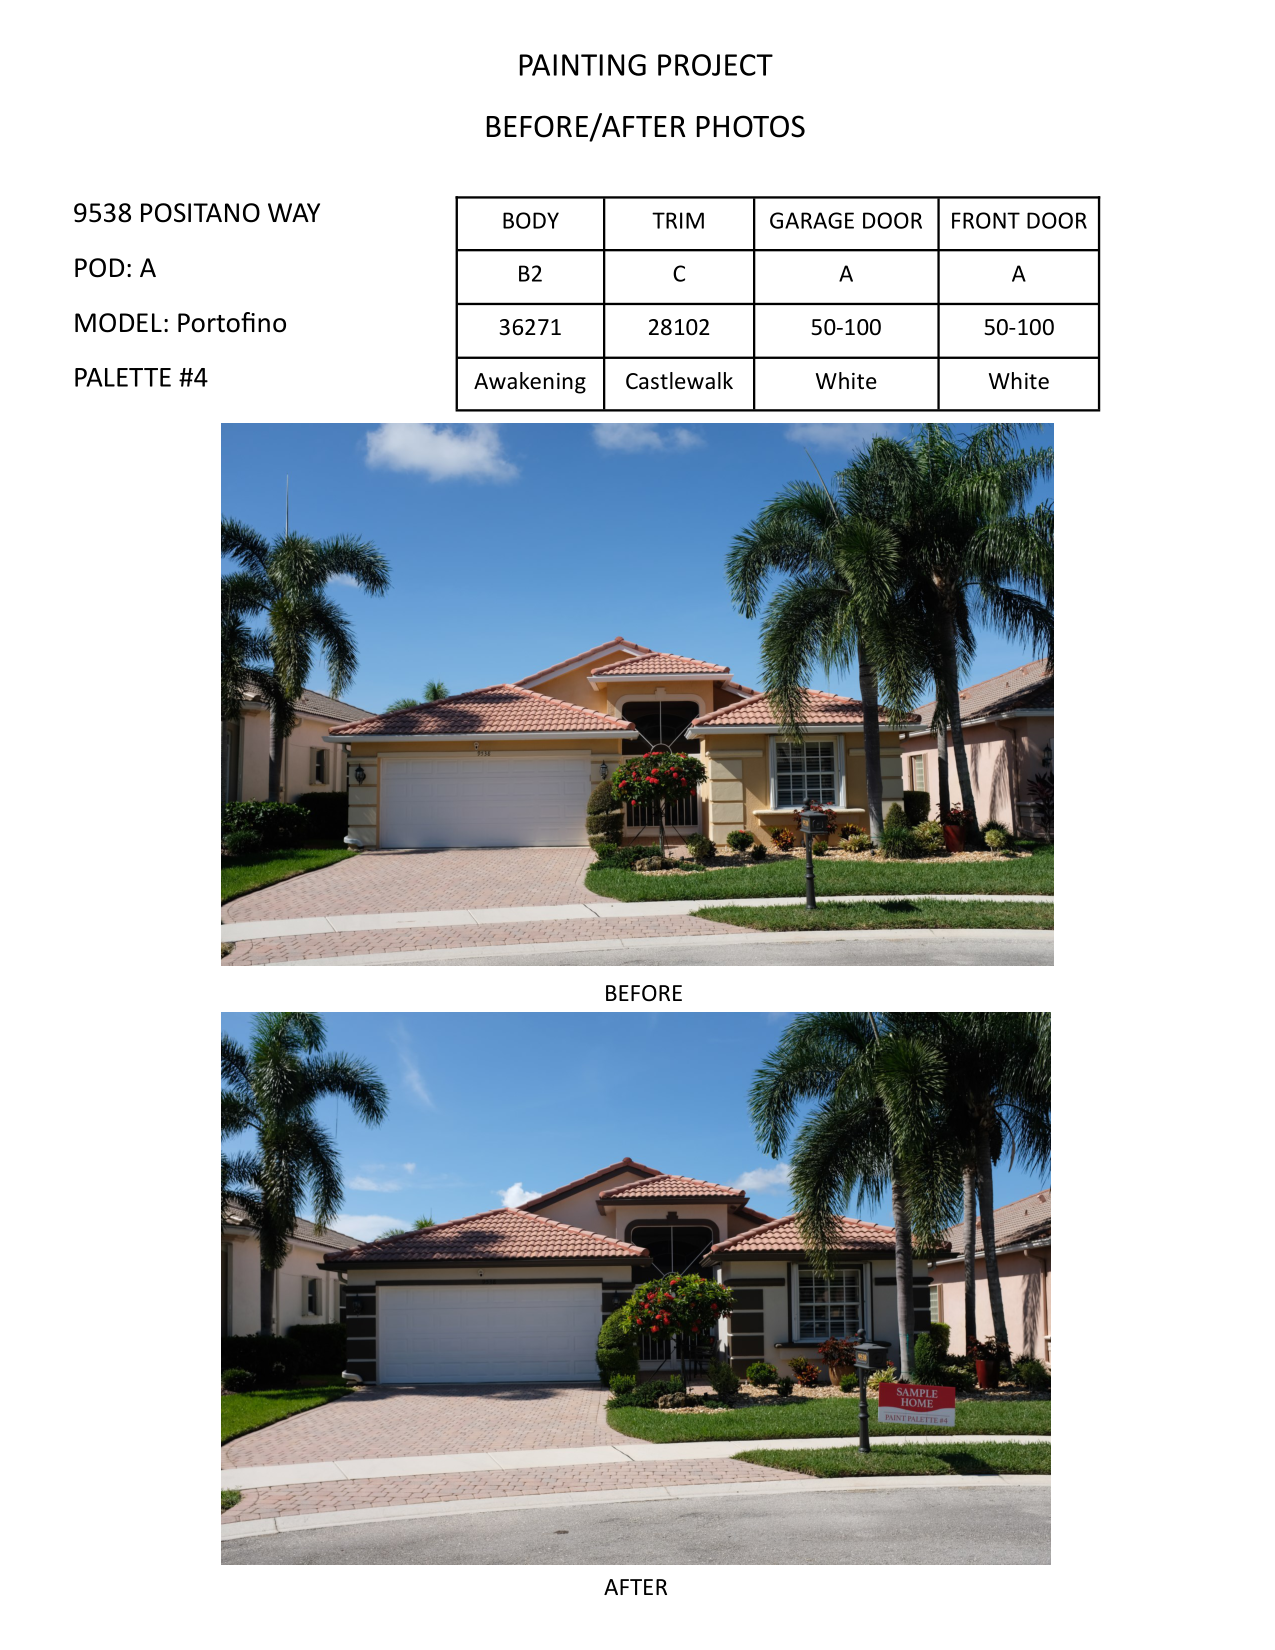 b4aftersample homes pictures-4.png